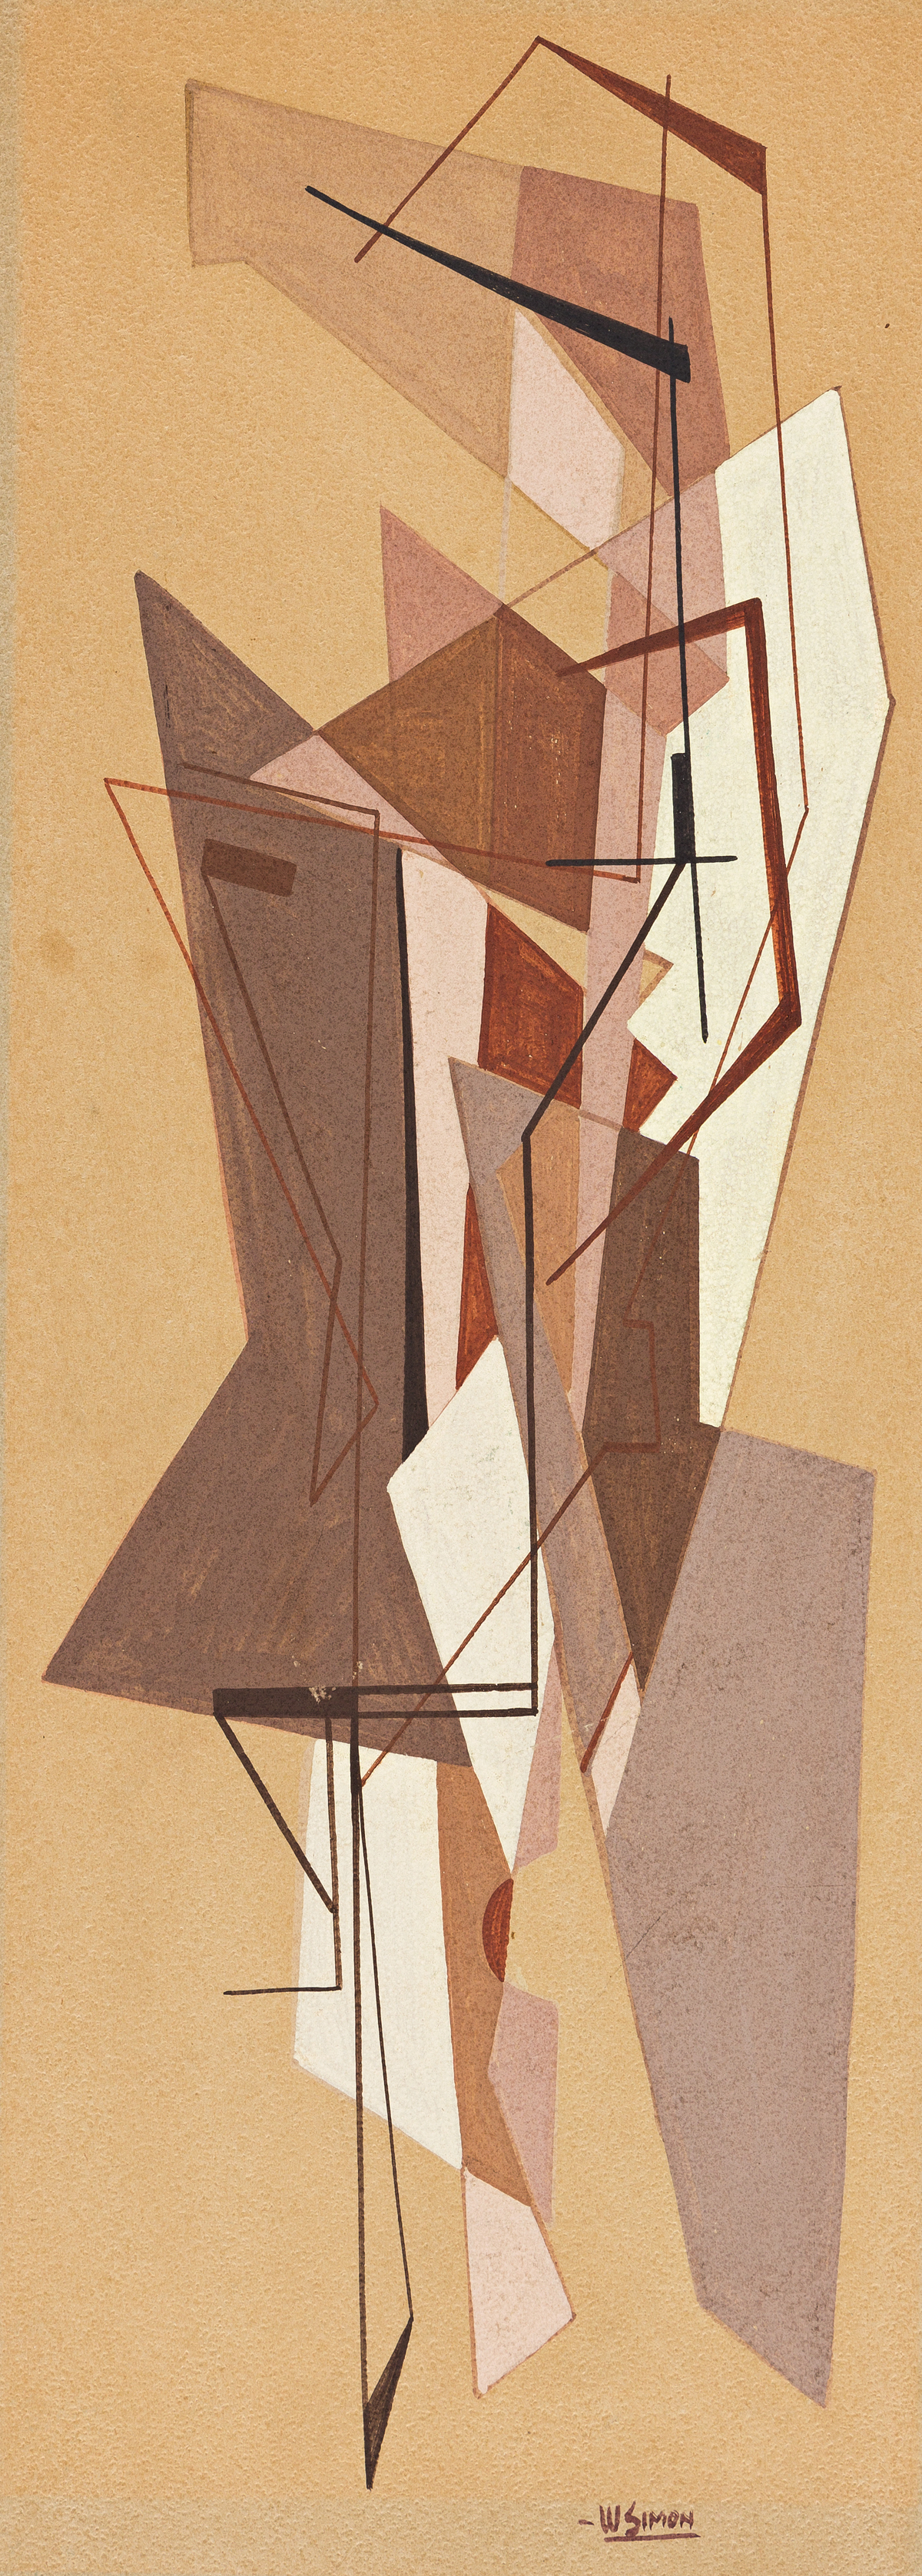 WALTER AUGUSTUS SIMON (1916 - 1979) Untitled (Study in Brown).